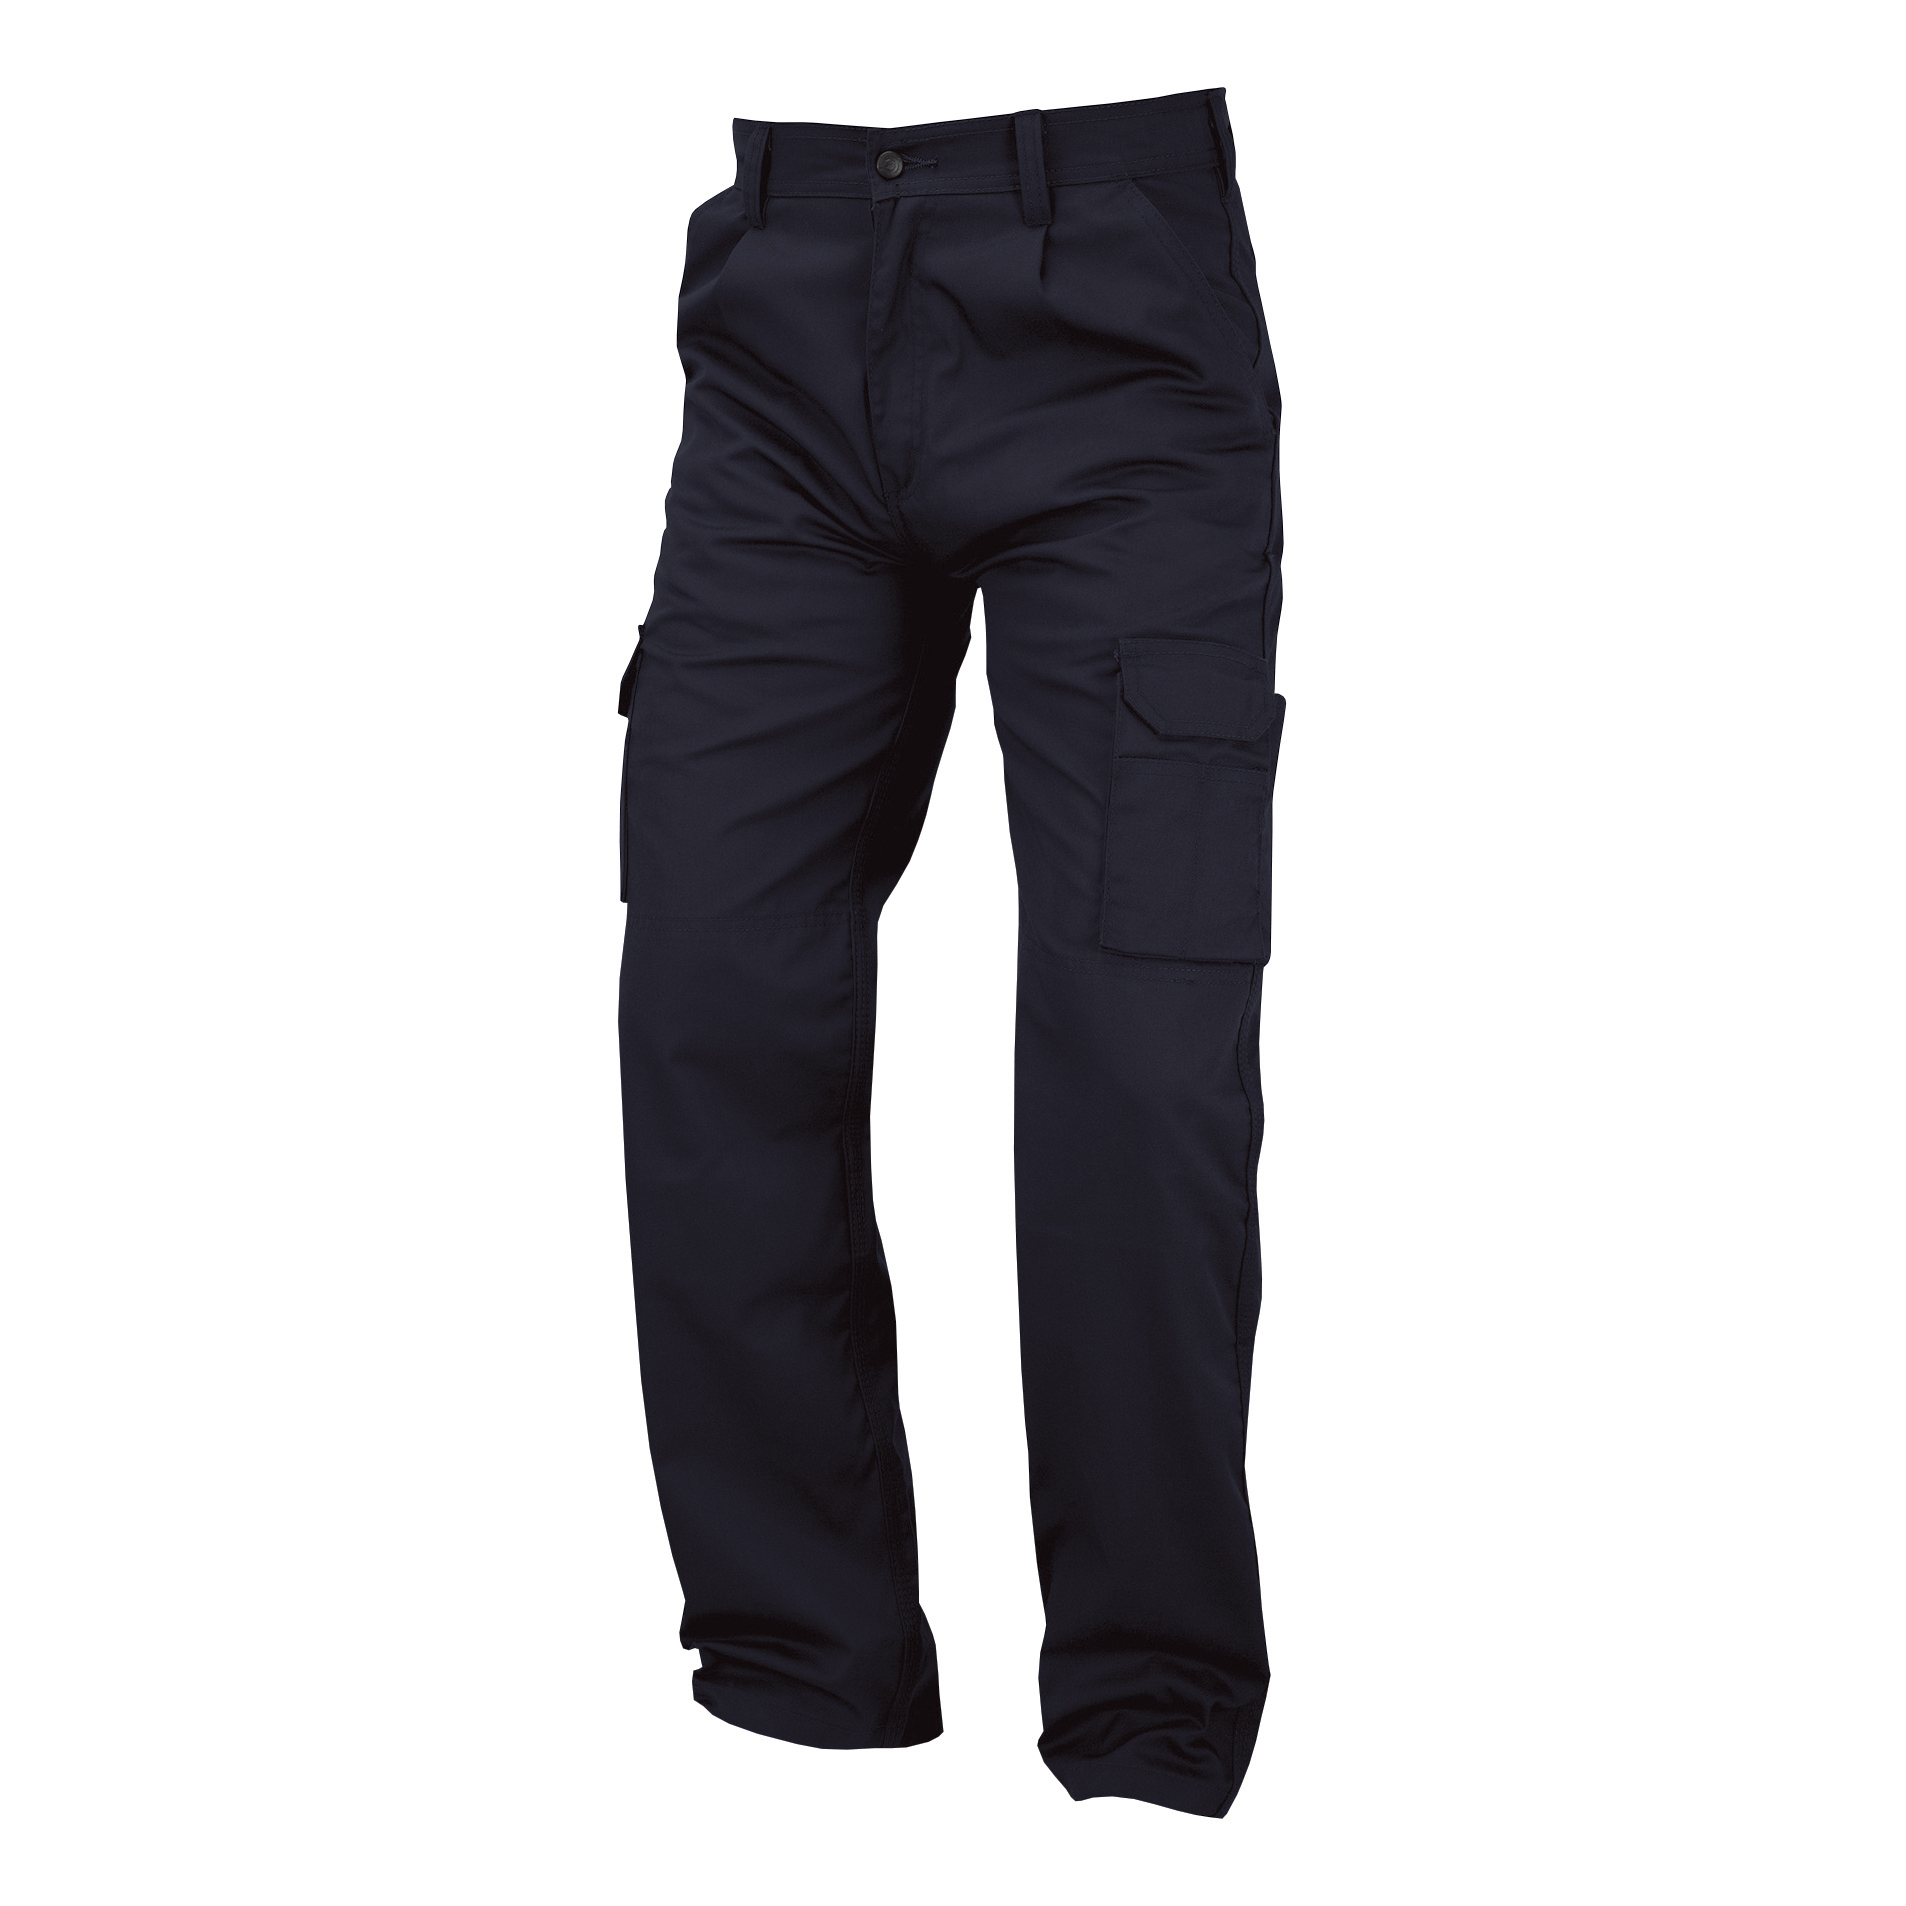 Business Kneepad Combat Trouser Multi-functional Waist 48in Leg 29in Navy